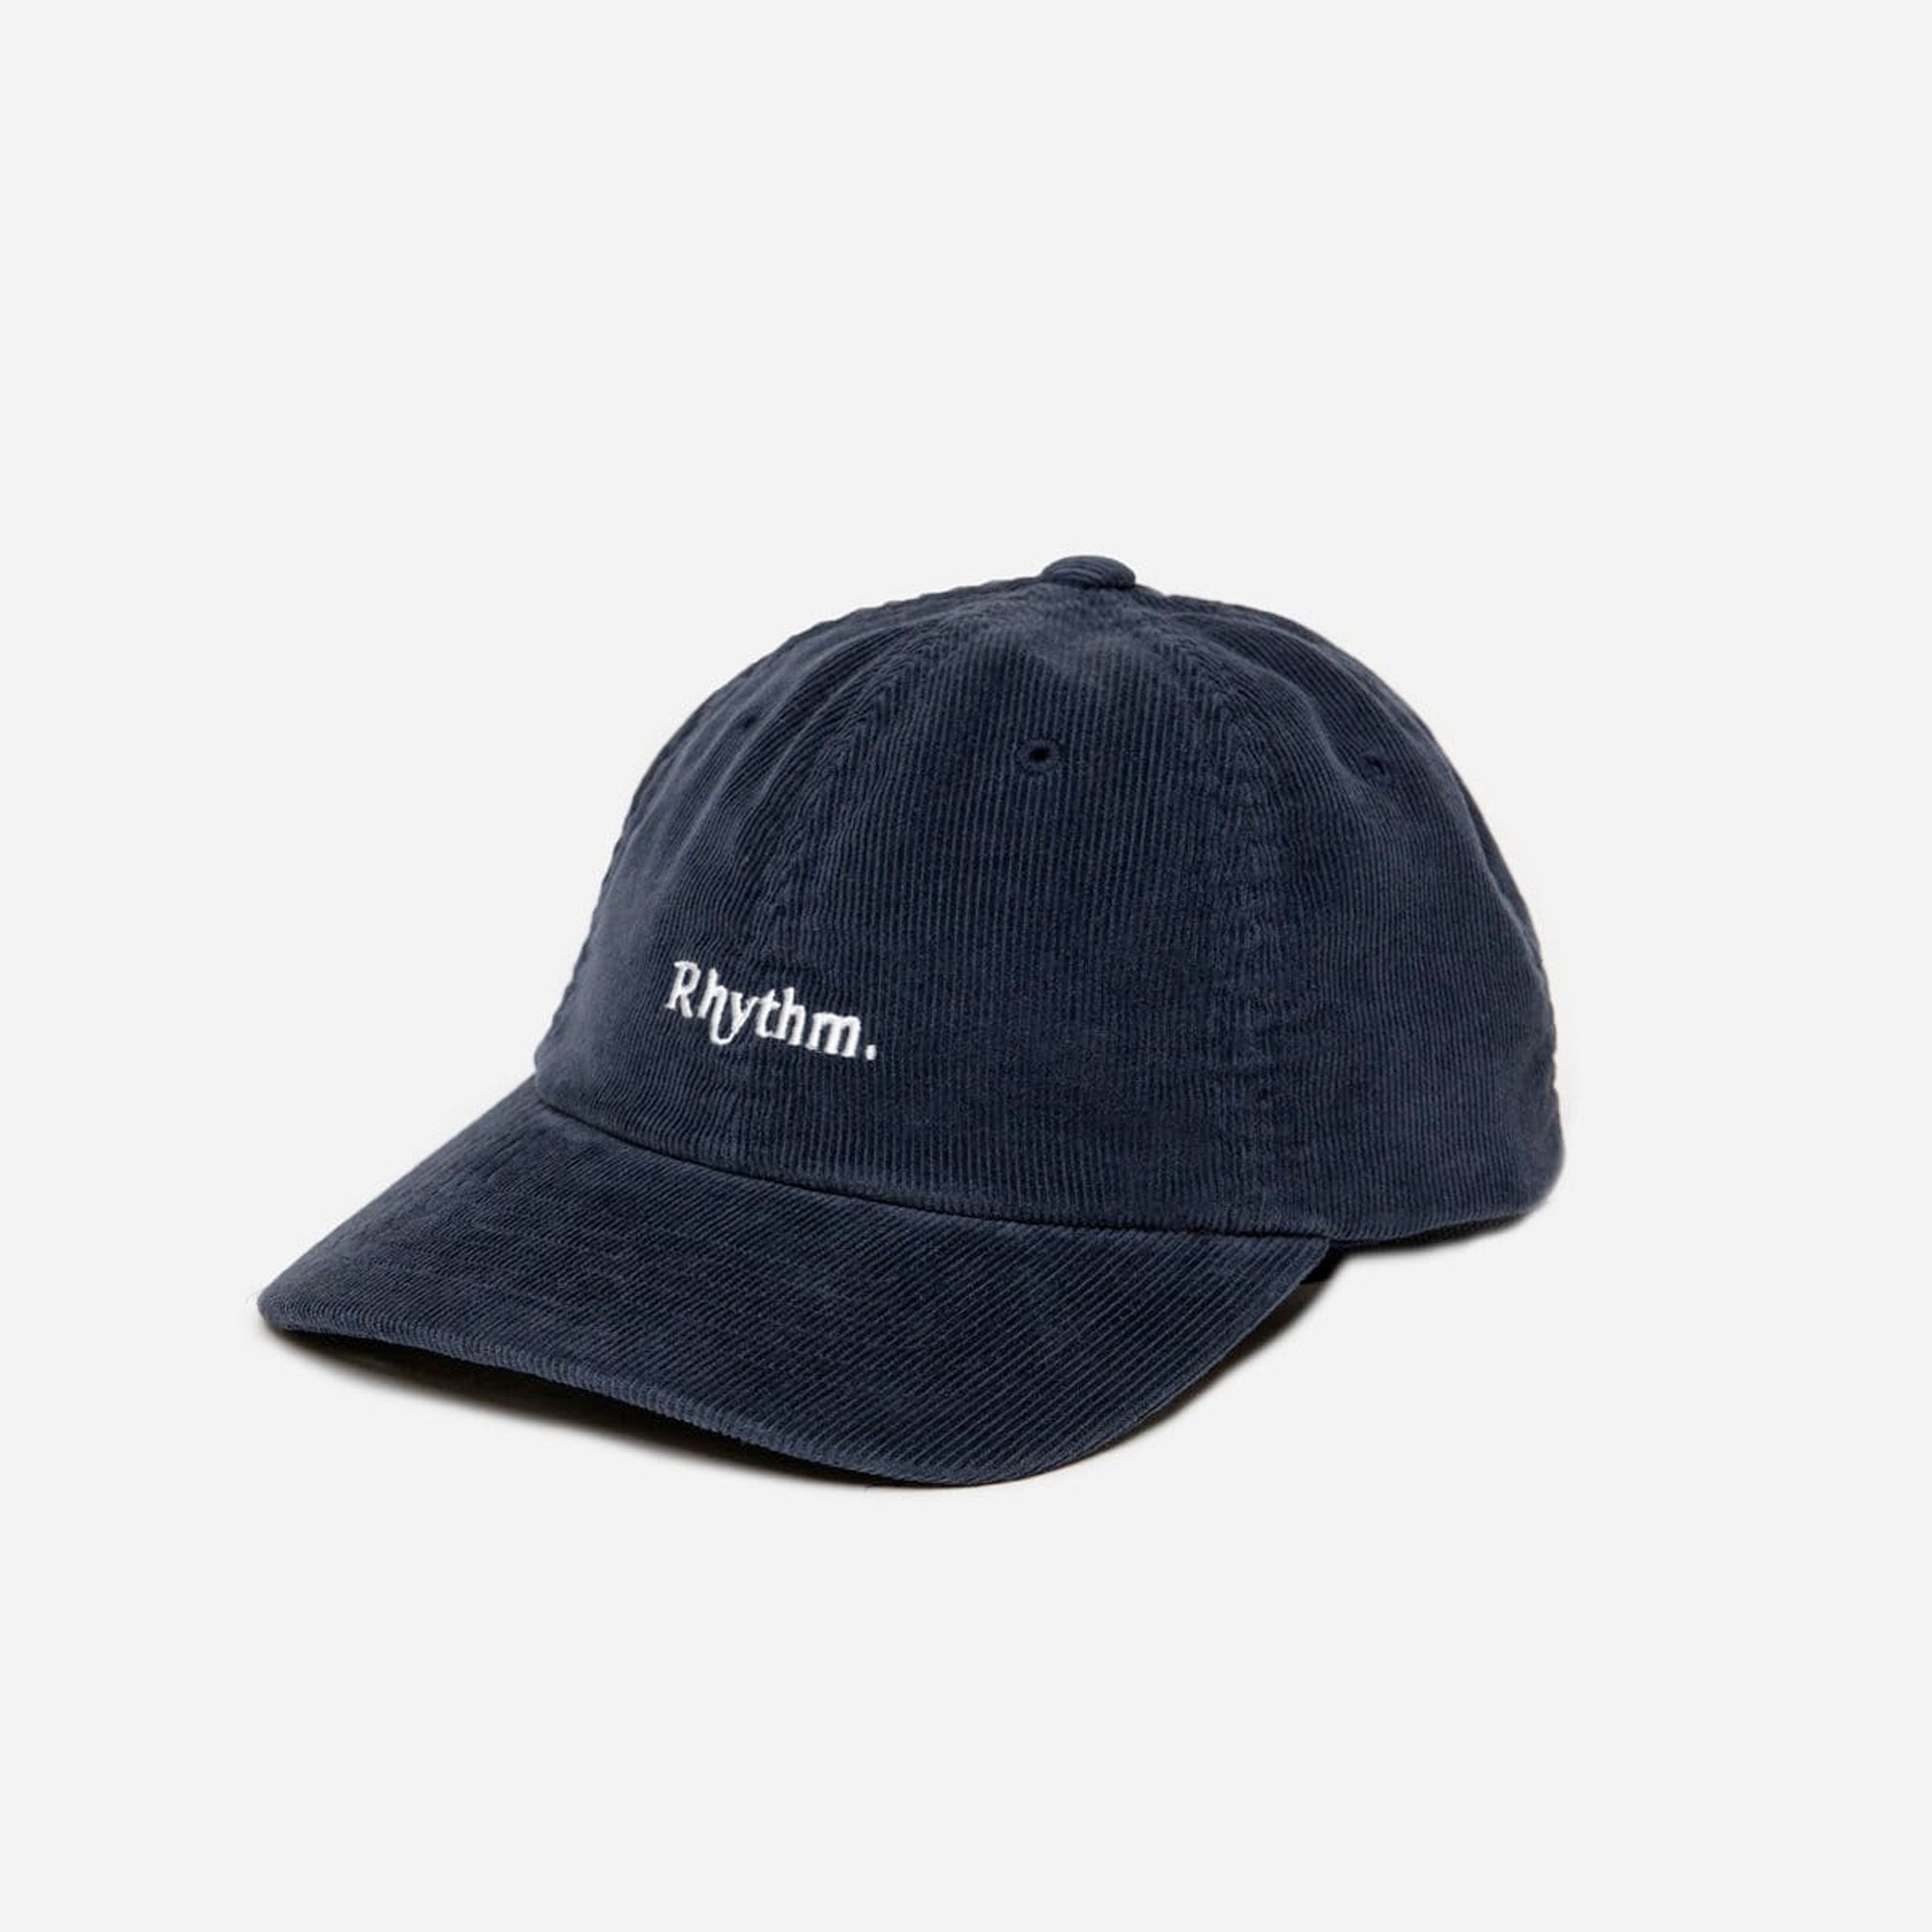 Rhythm Cap Men's Dad Hat